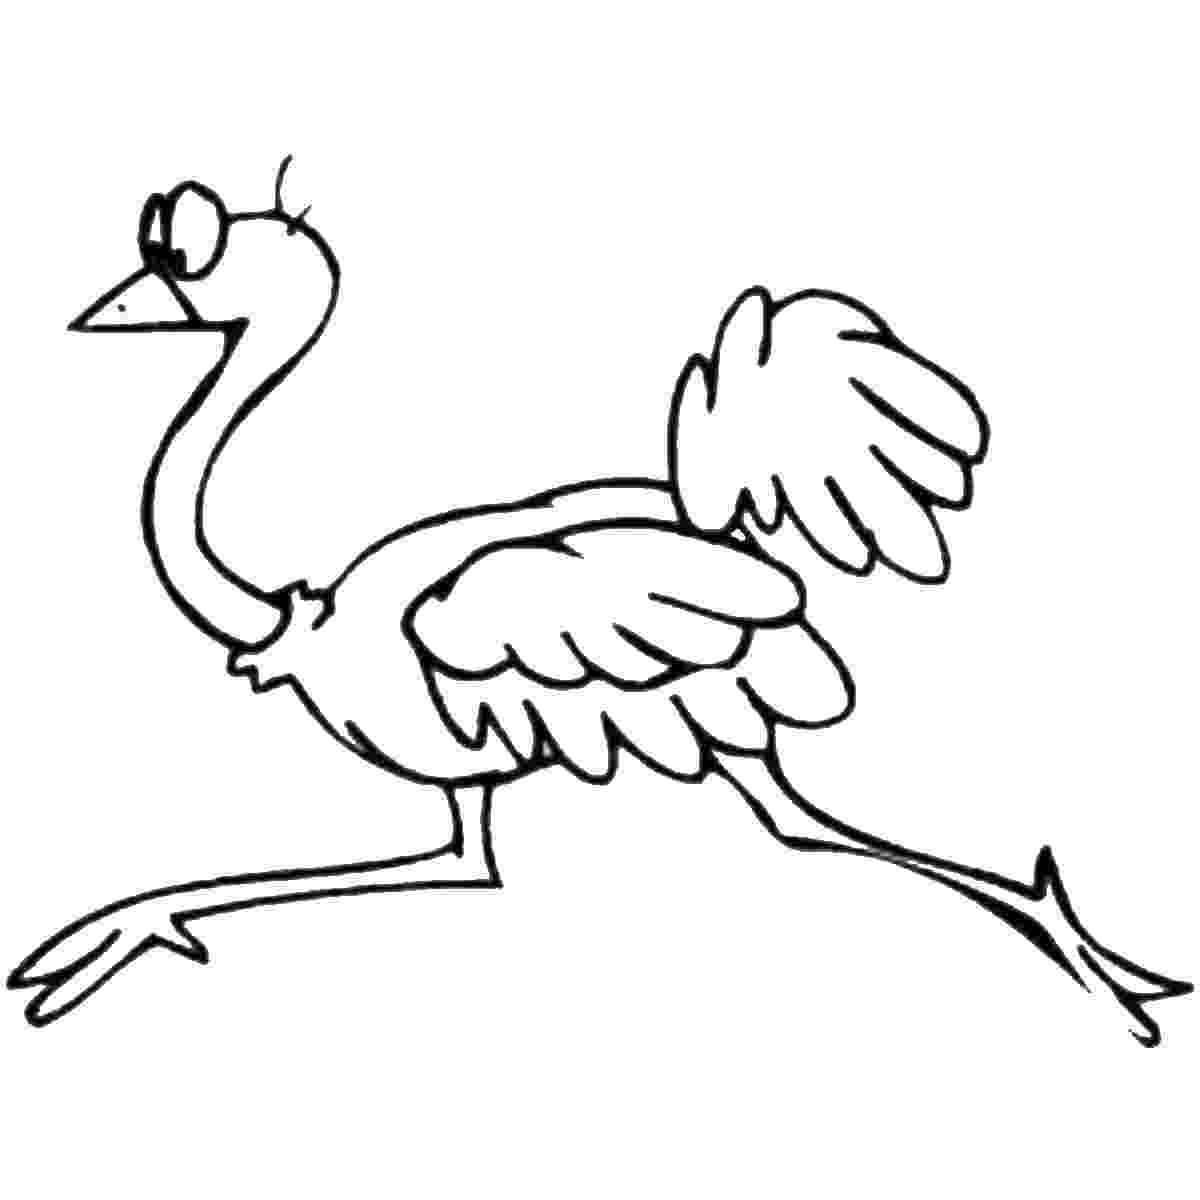 ostrich coloring page ostrich coloring pages coloring pages to download and print coloring page ostrich